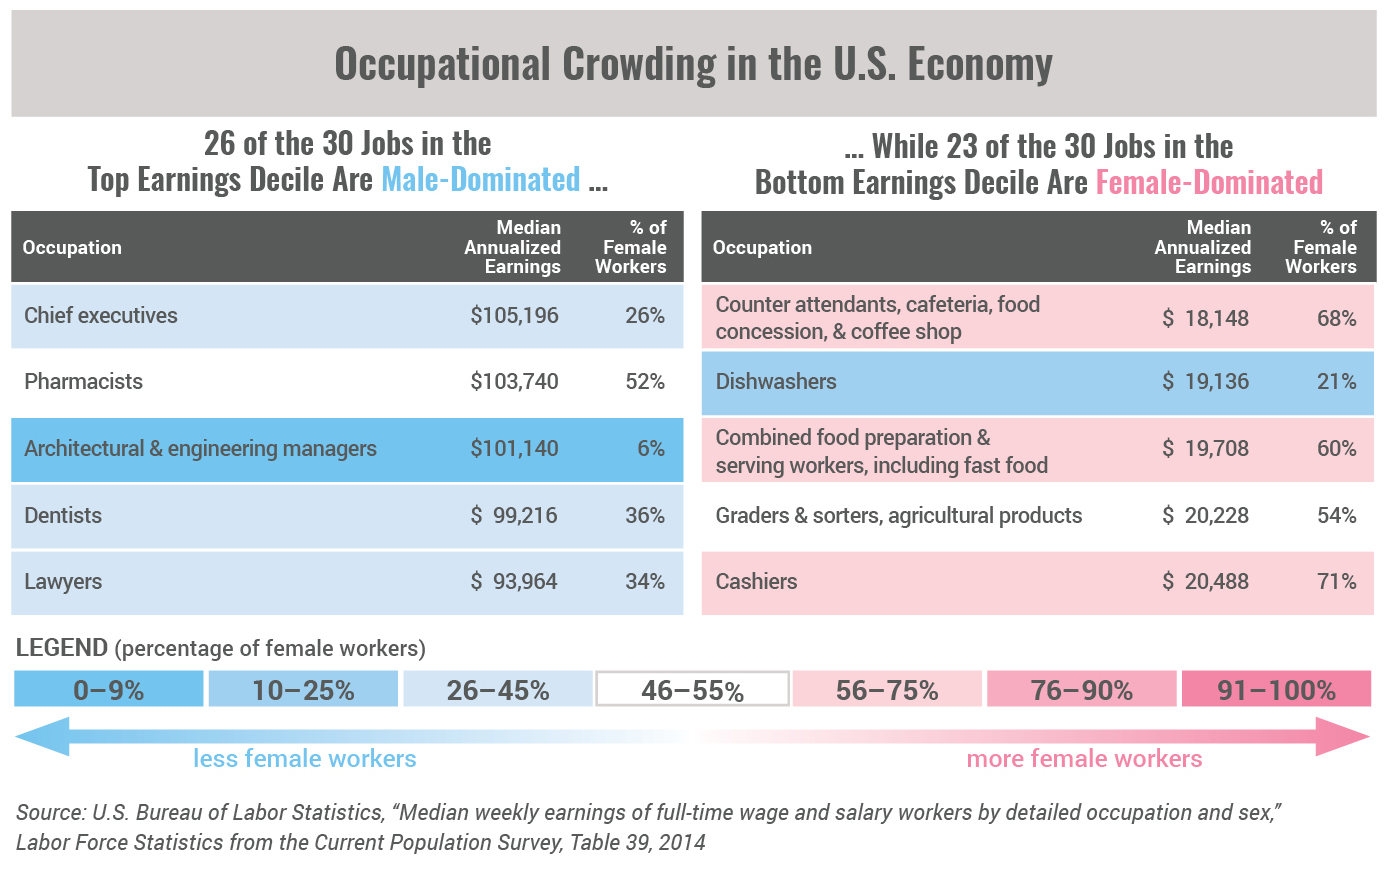 Occupational Crowding in the U.S. Economy Top 5